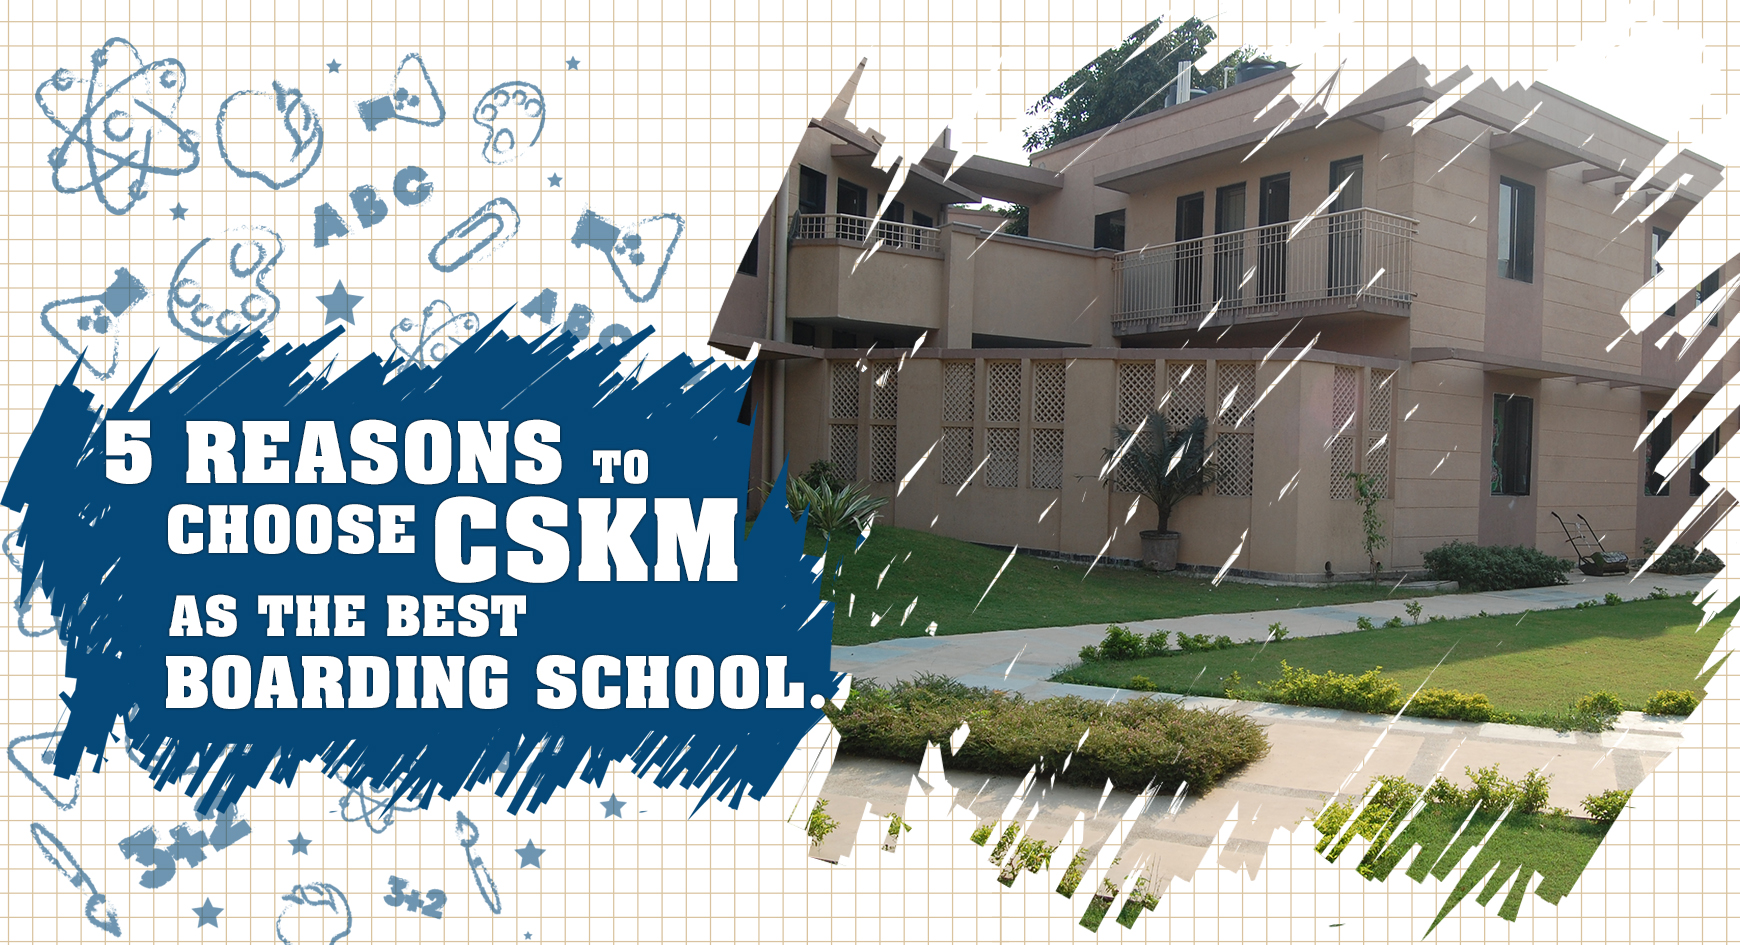 5 Reasons to Choose CSKM as the Best Boarding School